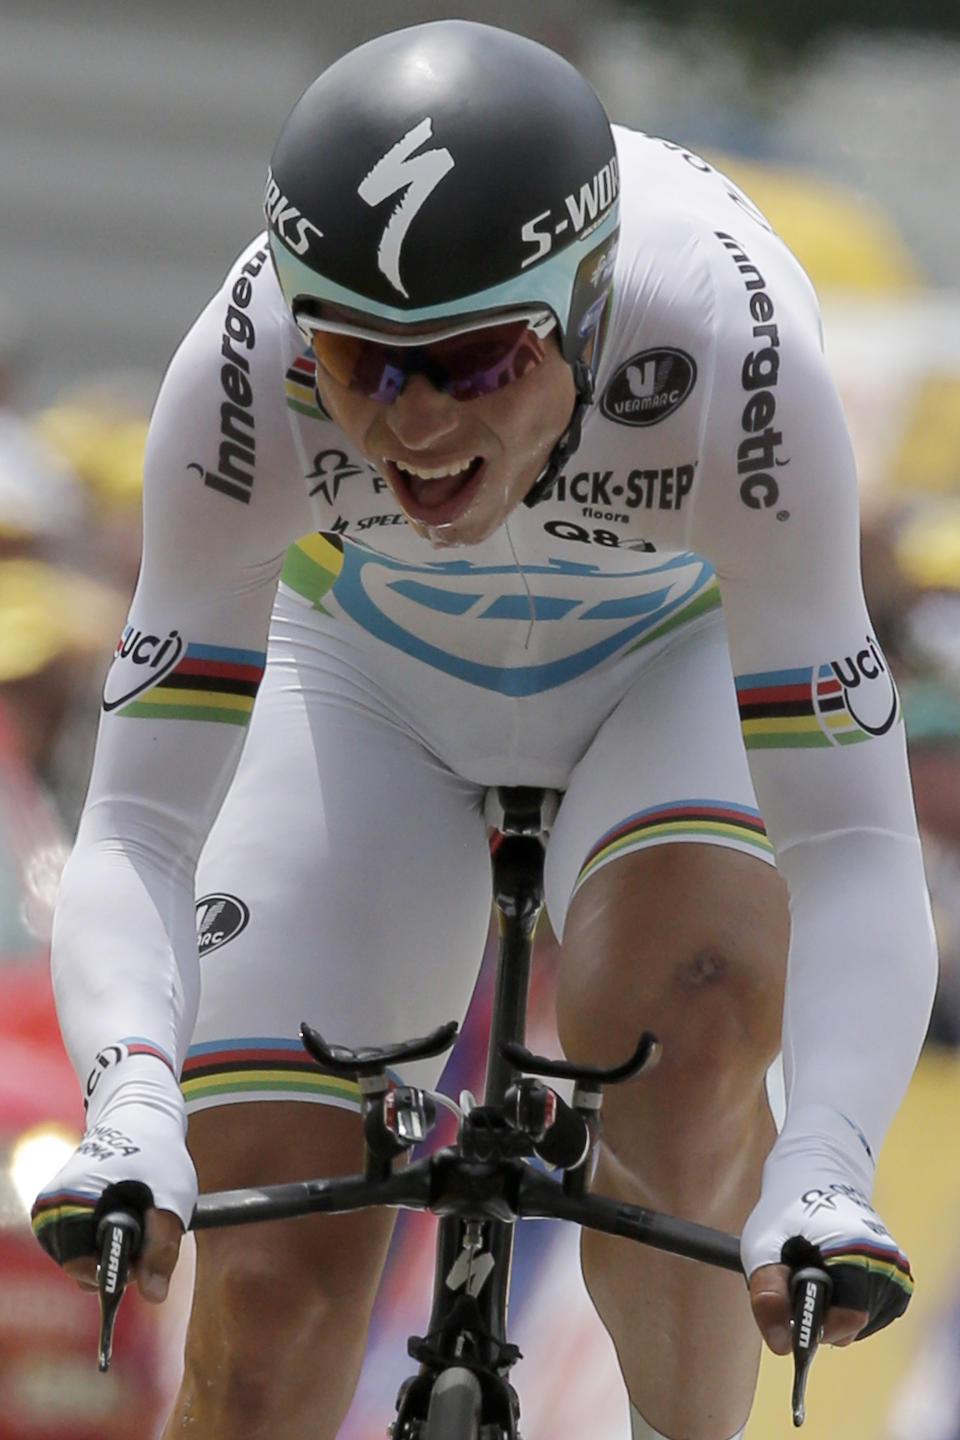 Tony Martin of Germany strains in the last meters of the 9th stage of the Tour de France cycling race, an individual time trial over 41.5 kilometers (25.8 miles) with start in Arc-et-Senans and finish in Besancon, France, Monday July 9, 2012. (AP Photo/Laurent Rebours)